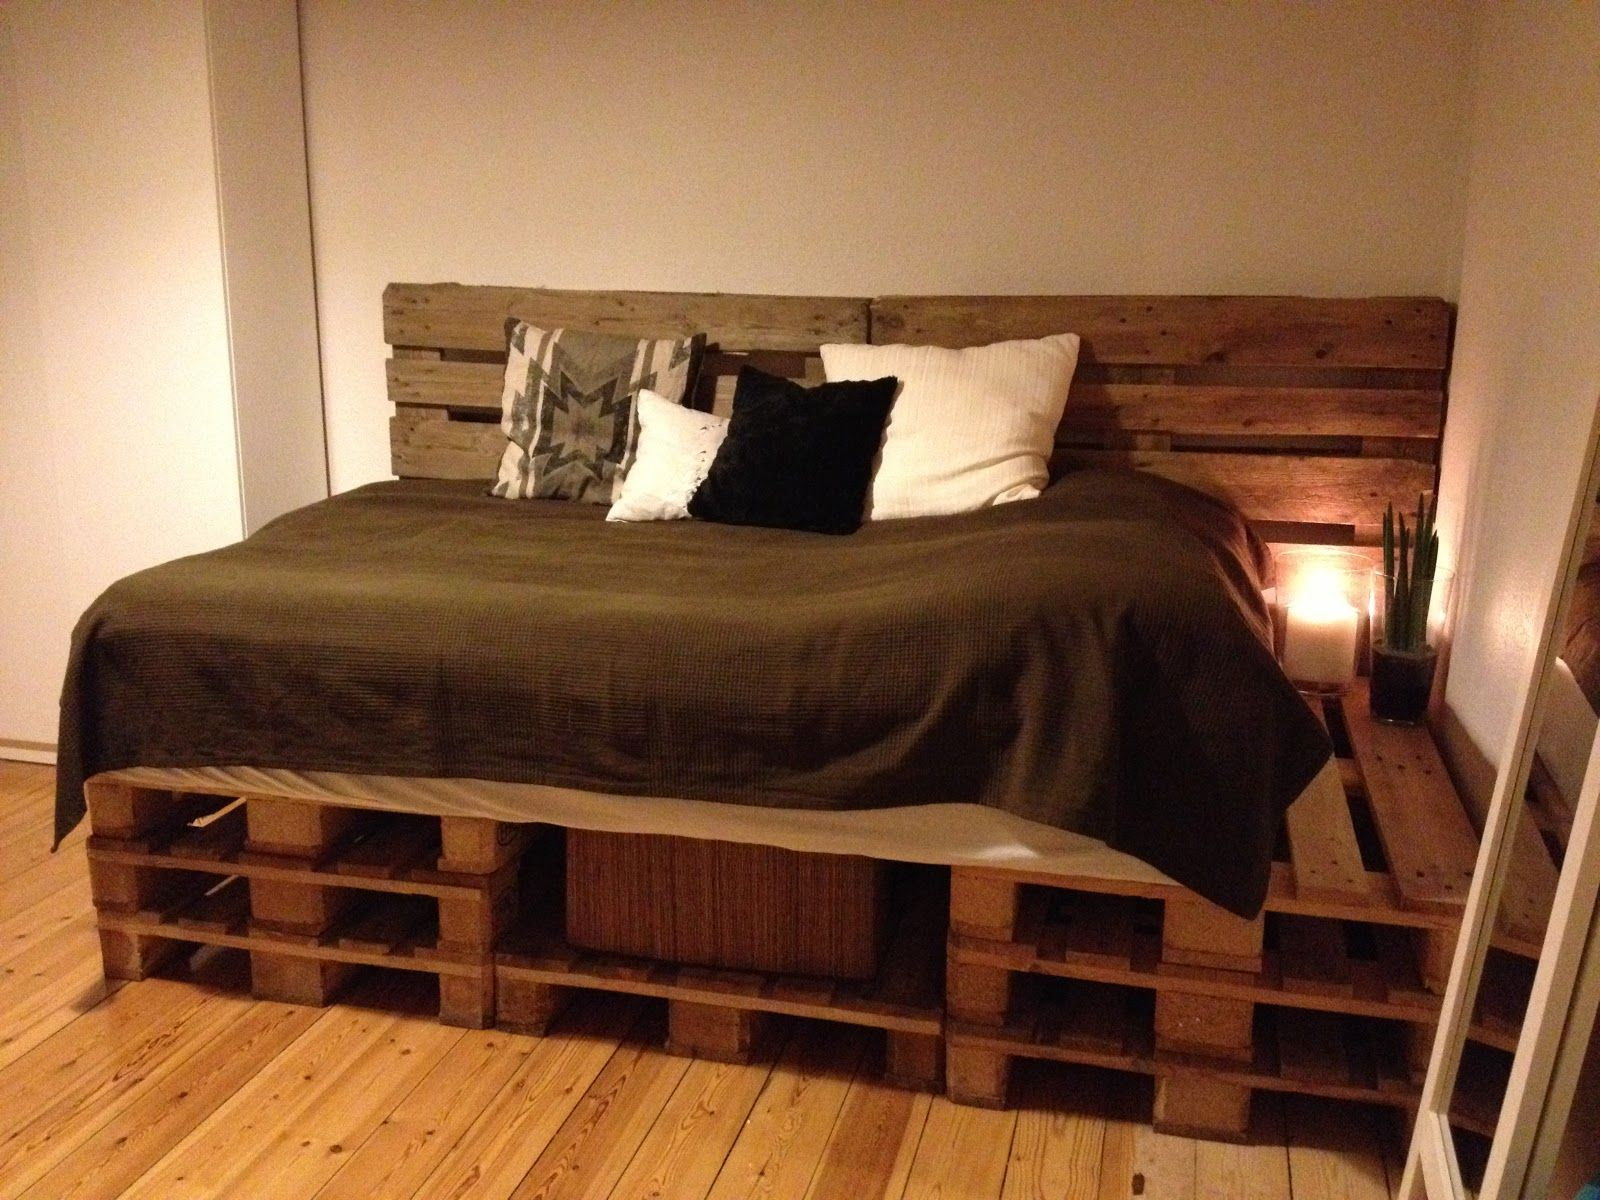 Explore Cool Sofas, Pallet Projects, And More